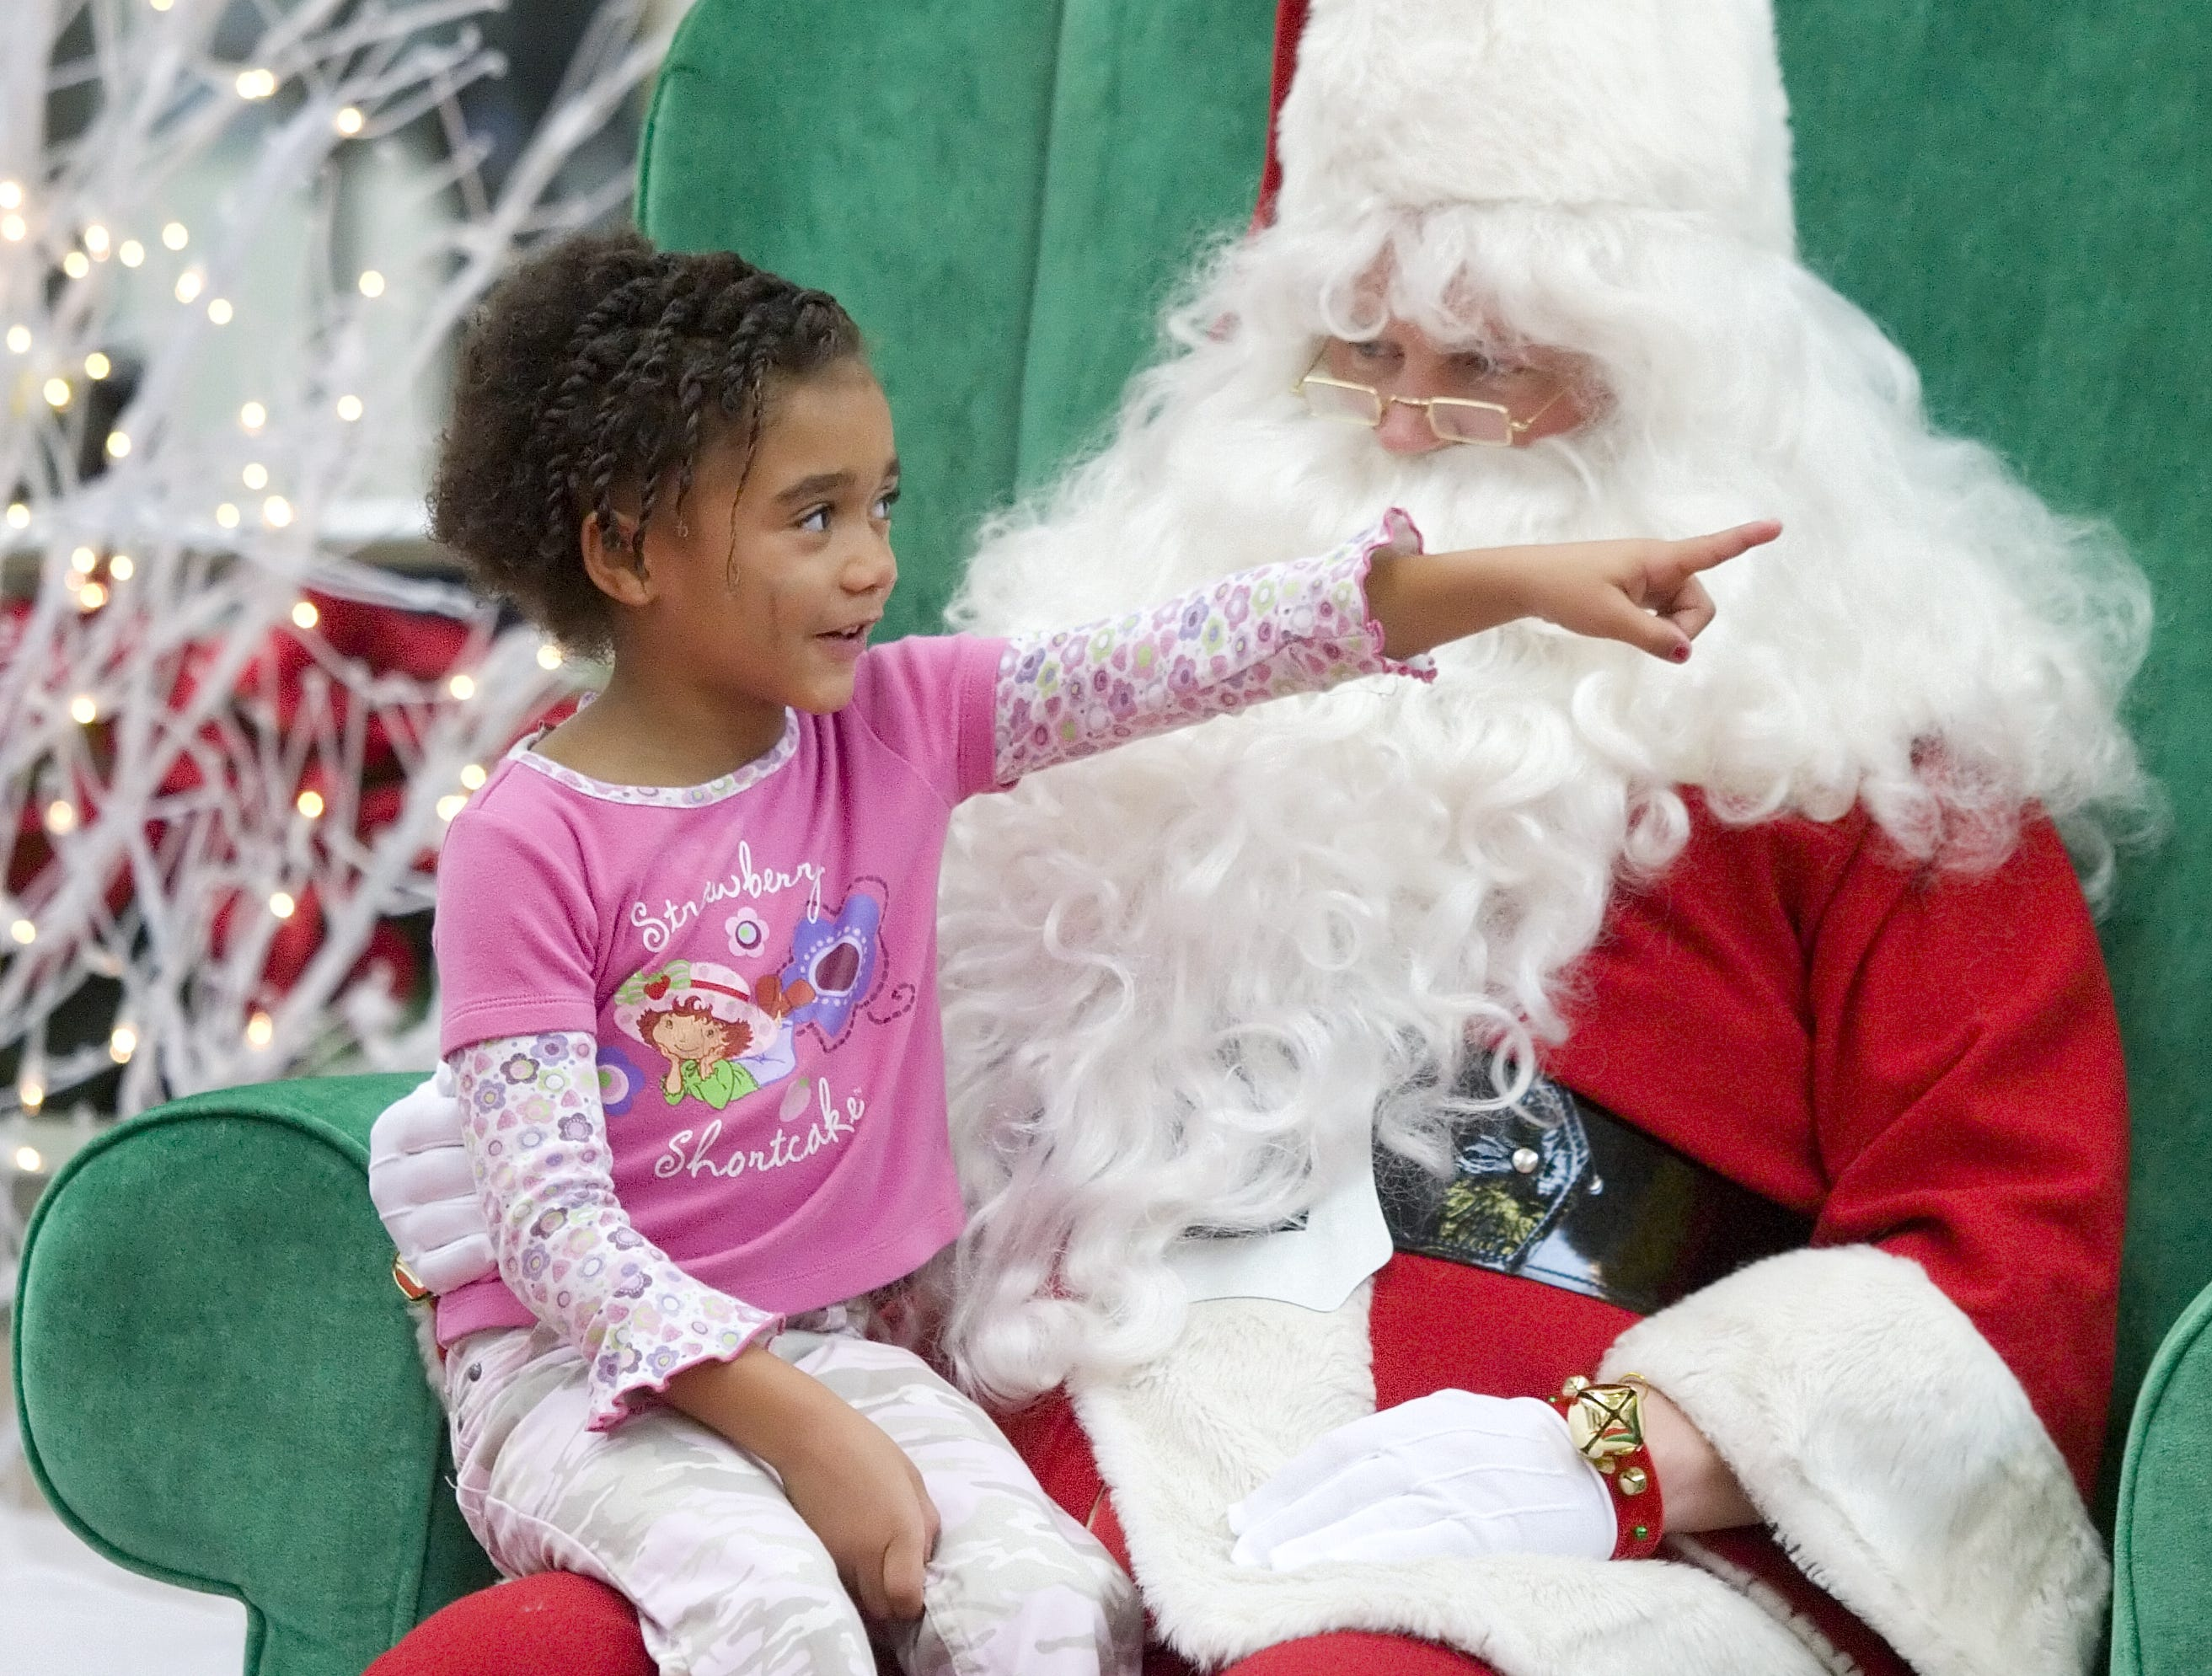 Elizabeth Ennis, 6, talks to Santa about reindeer in the mall before having her picture taken in Center Court of Arnot Mall in Big Flats in 2007.